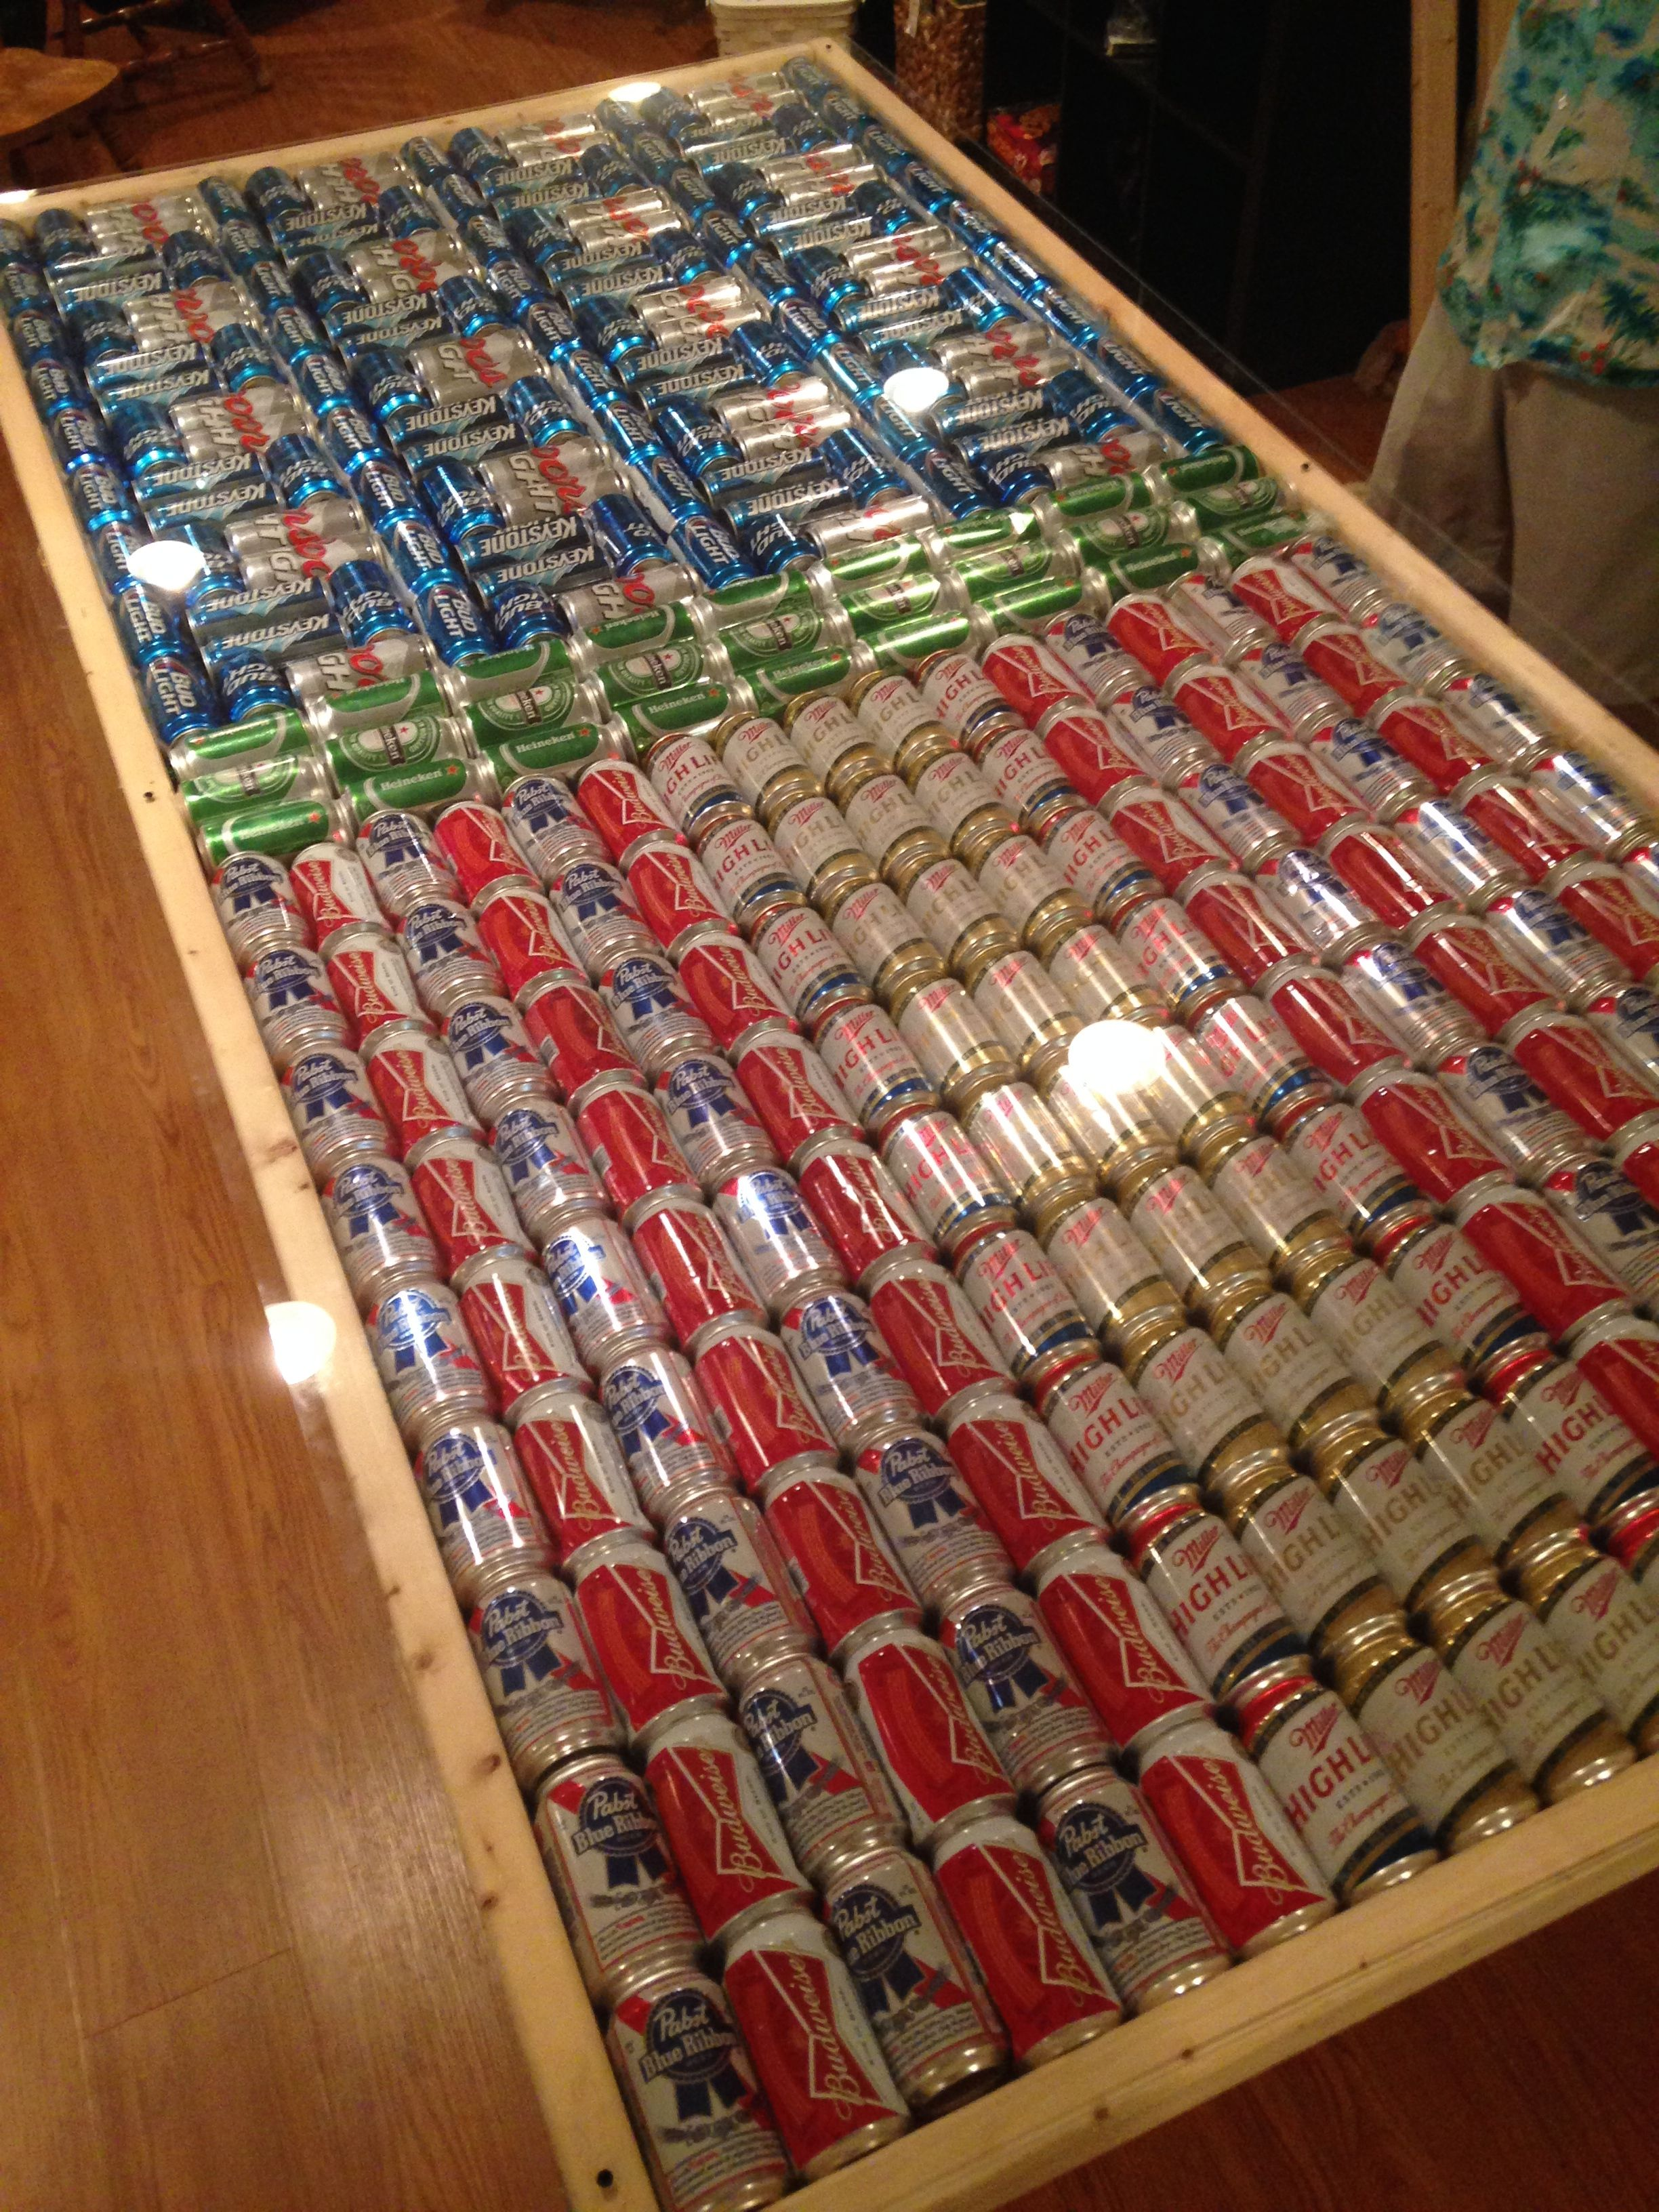 Beer pong table dimensions - A Real Beer Pong Table Tfm Yall Can We Please Make This More